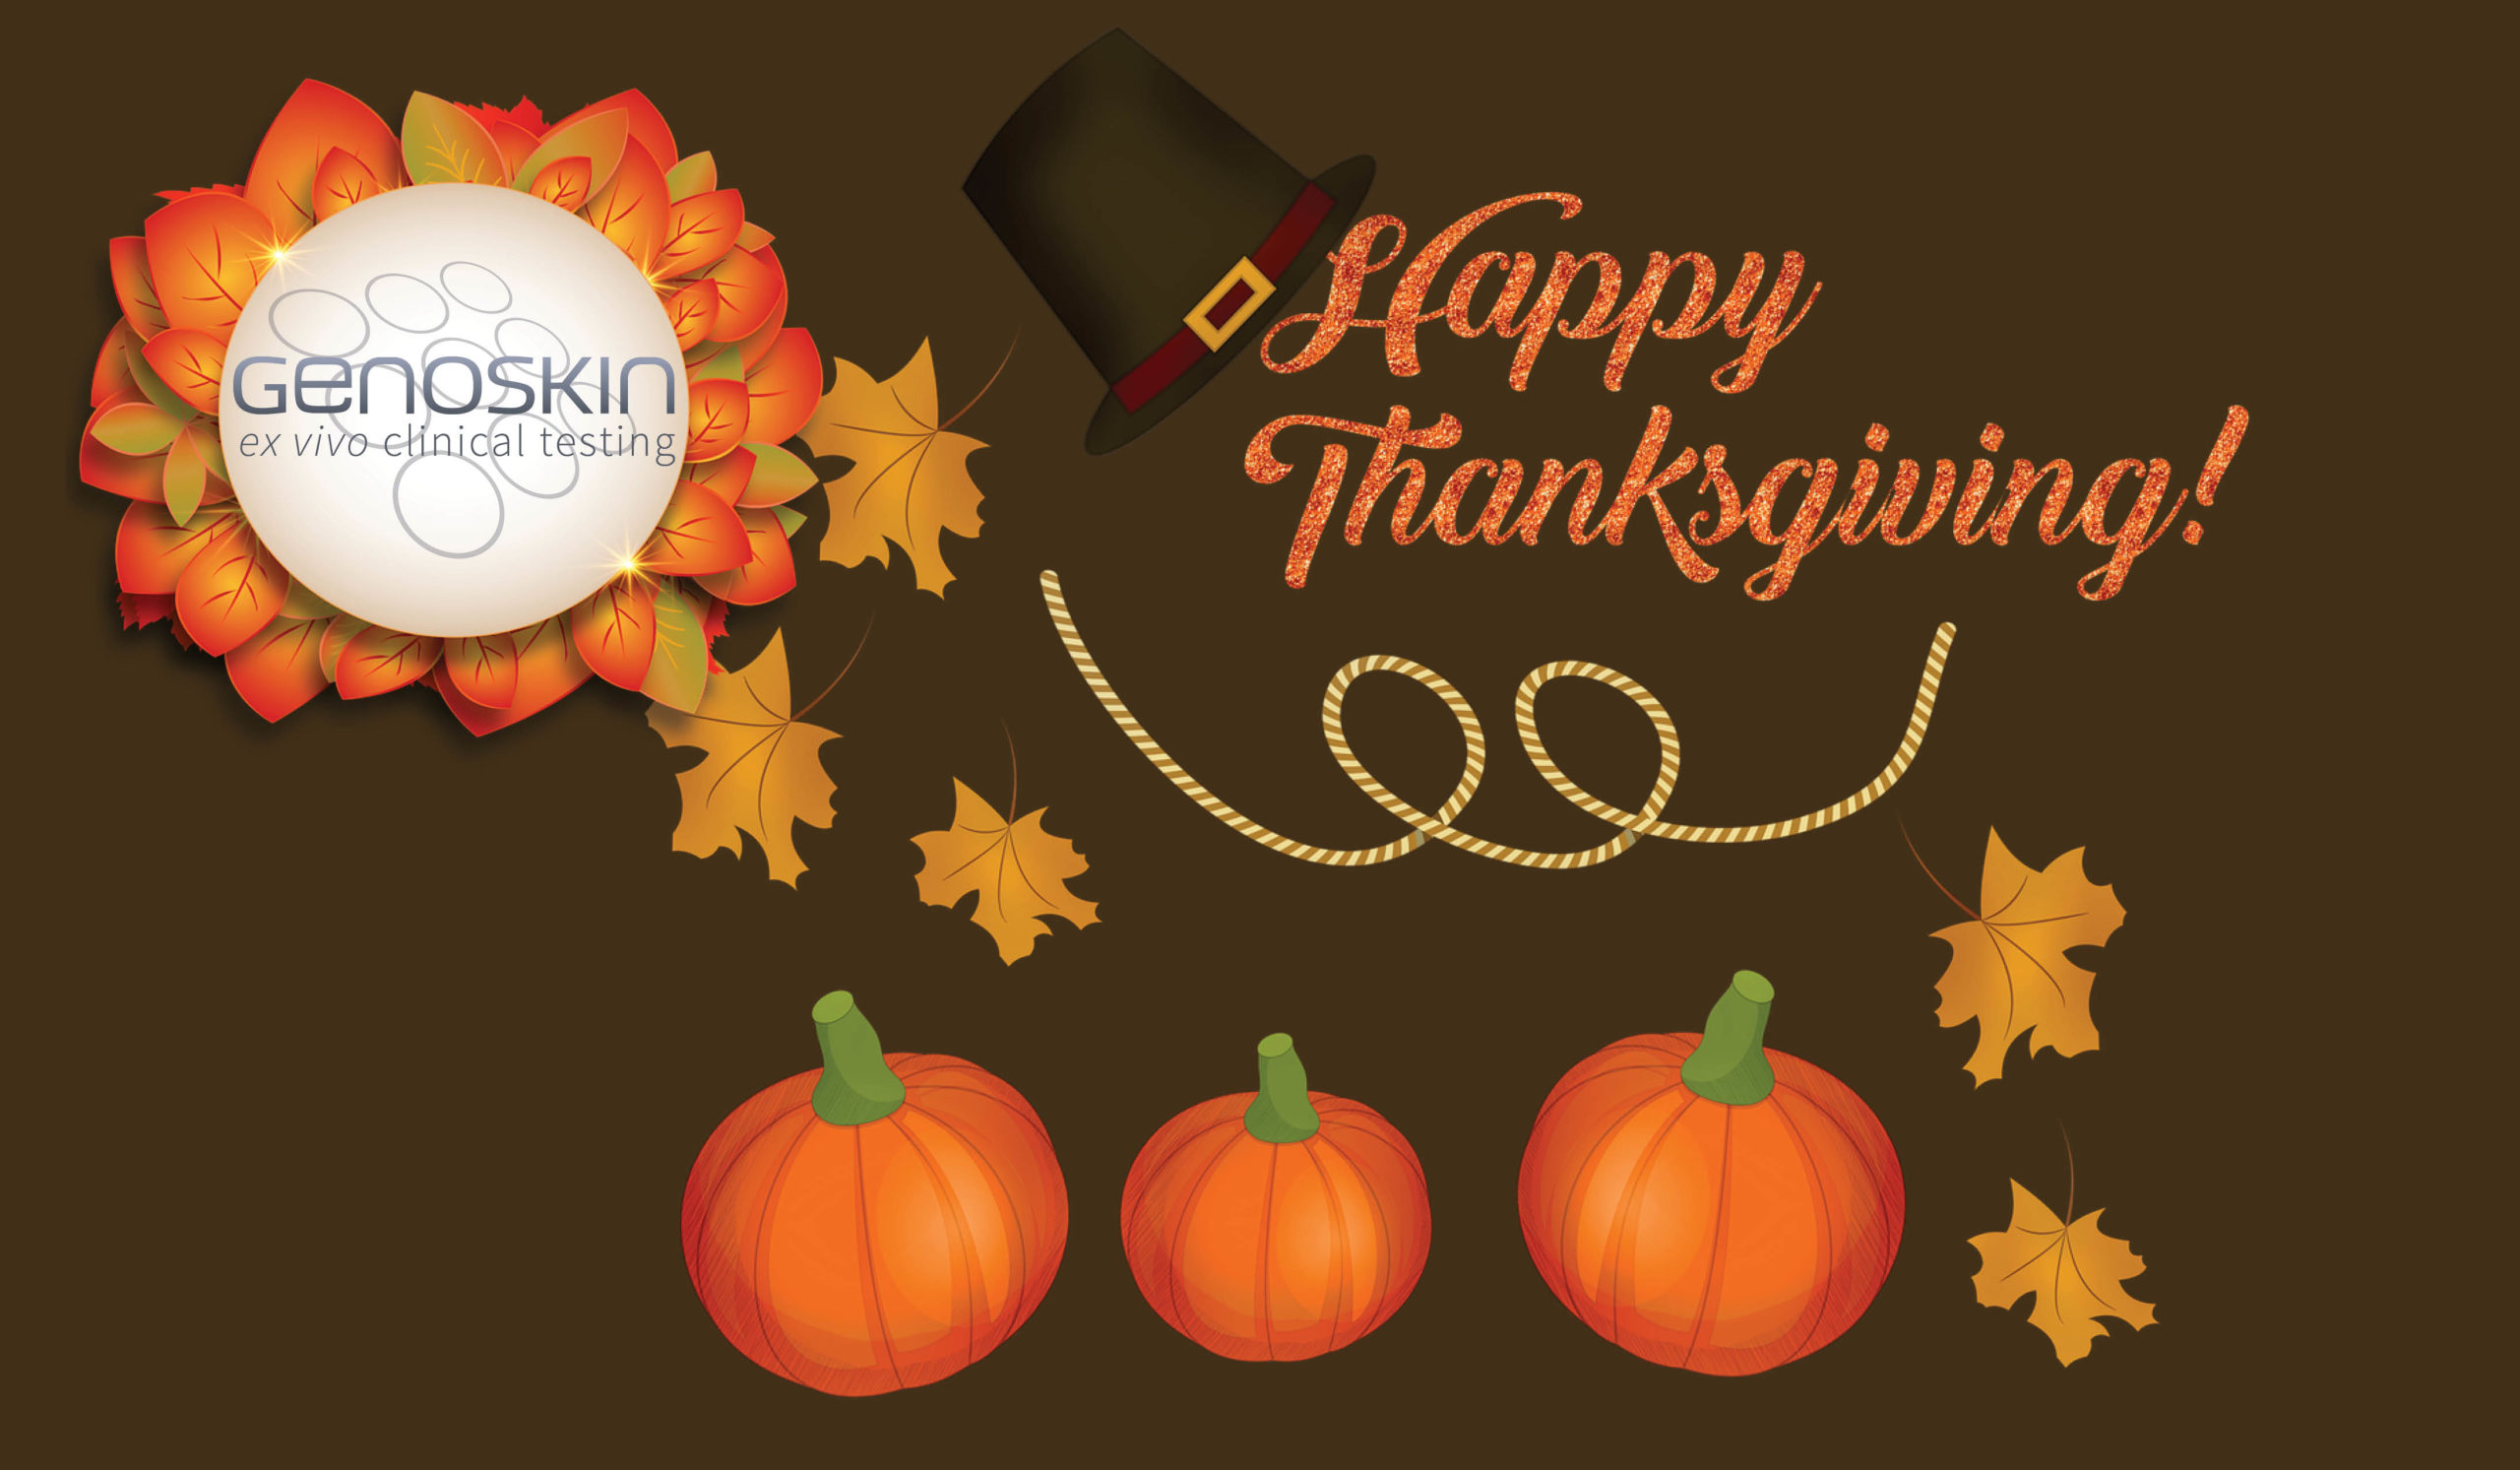 Happy Thanksgiving Illustration showing pumpkins and leaves